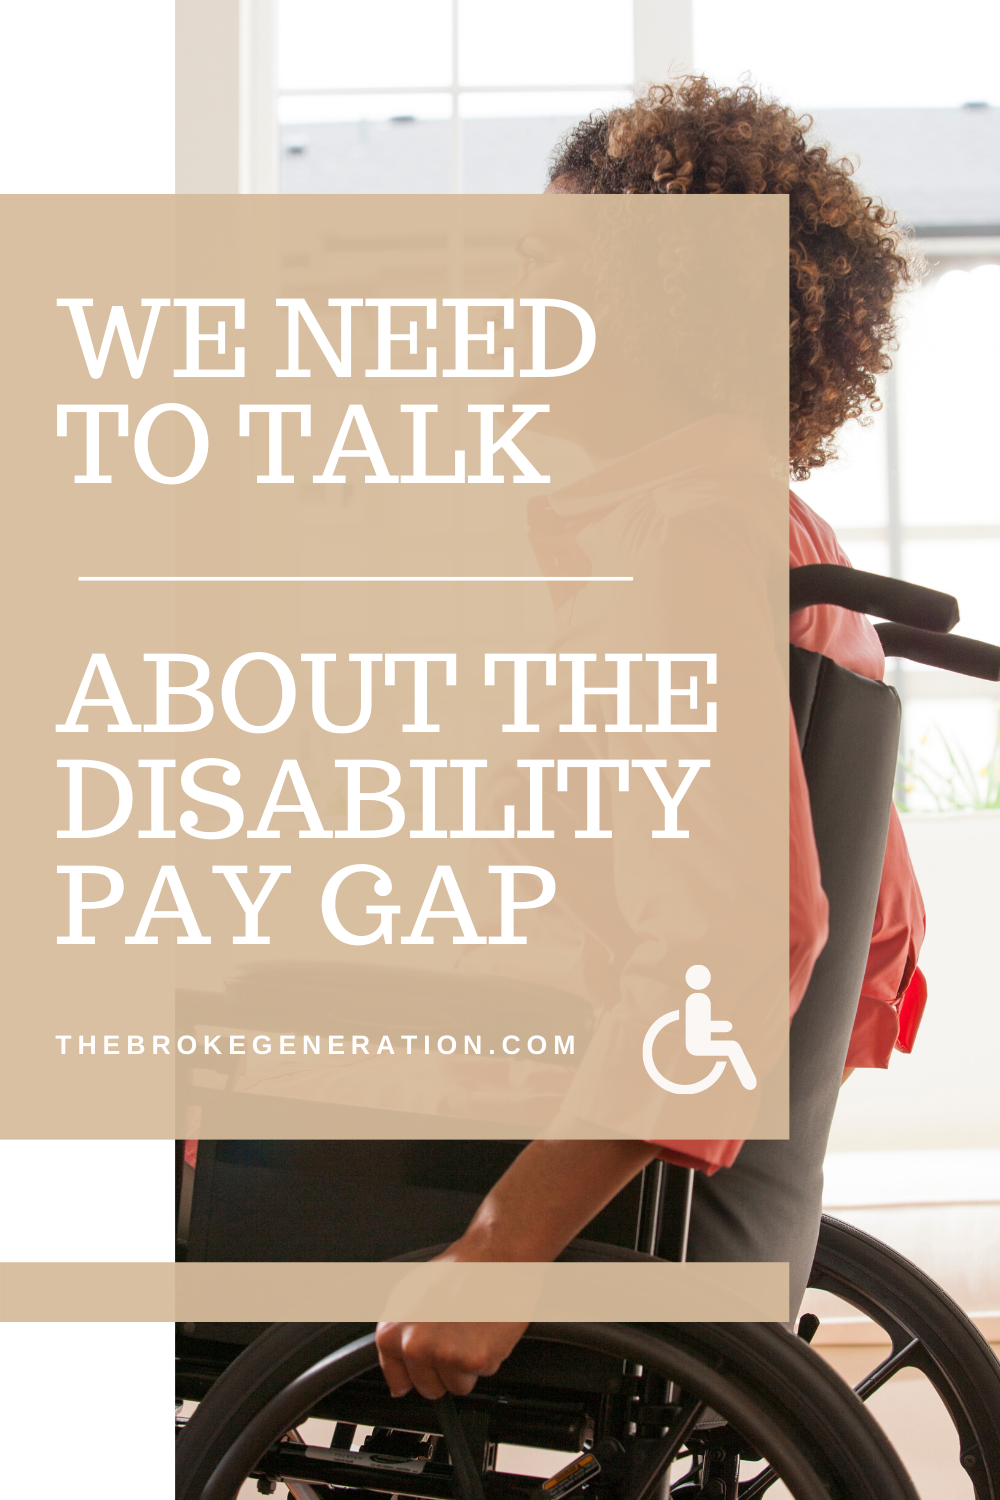 We need to talk about the disability pay gap